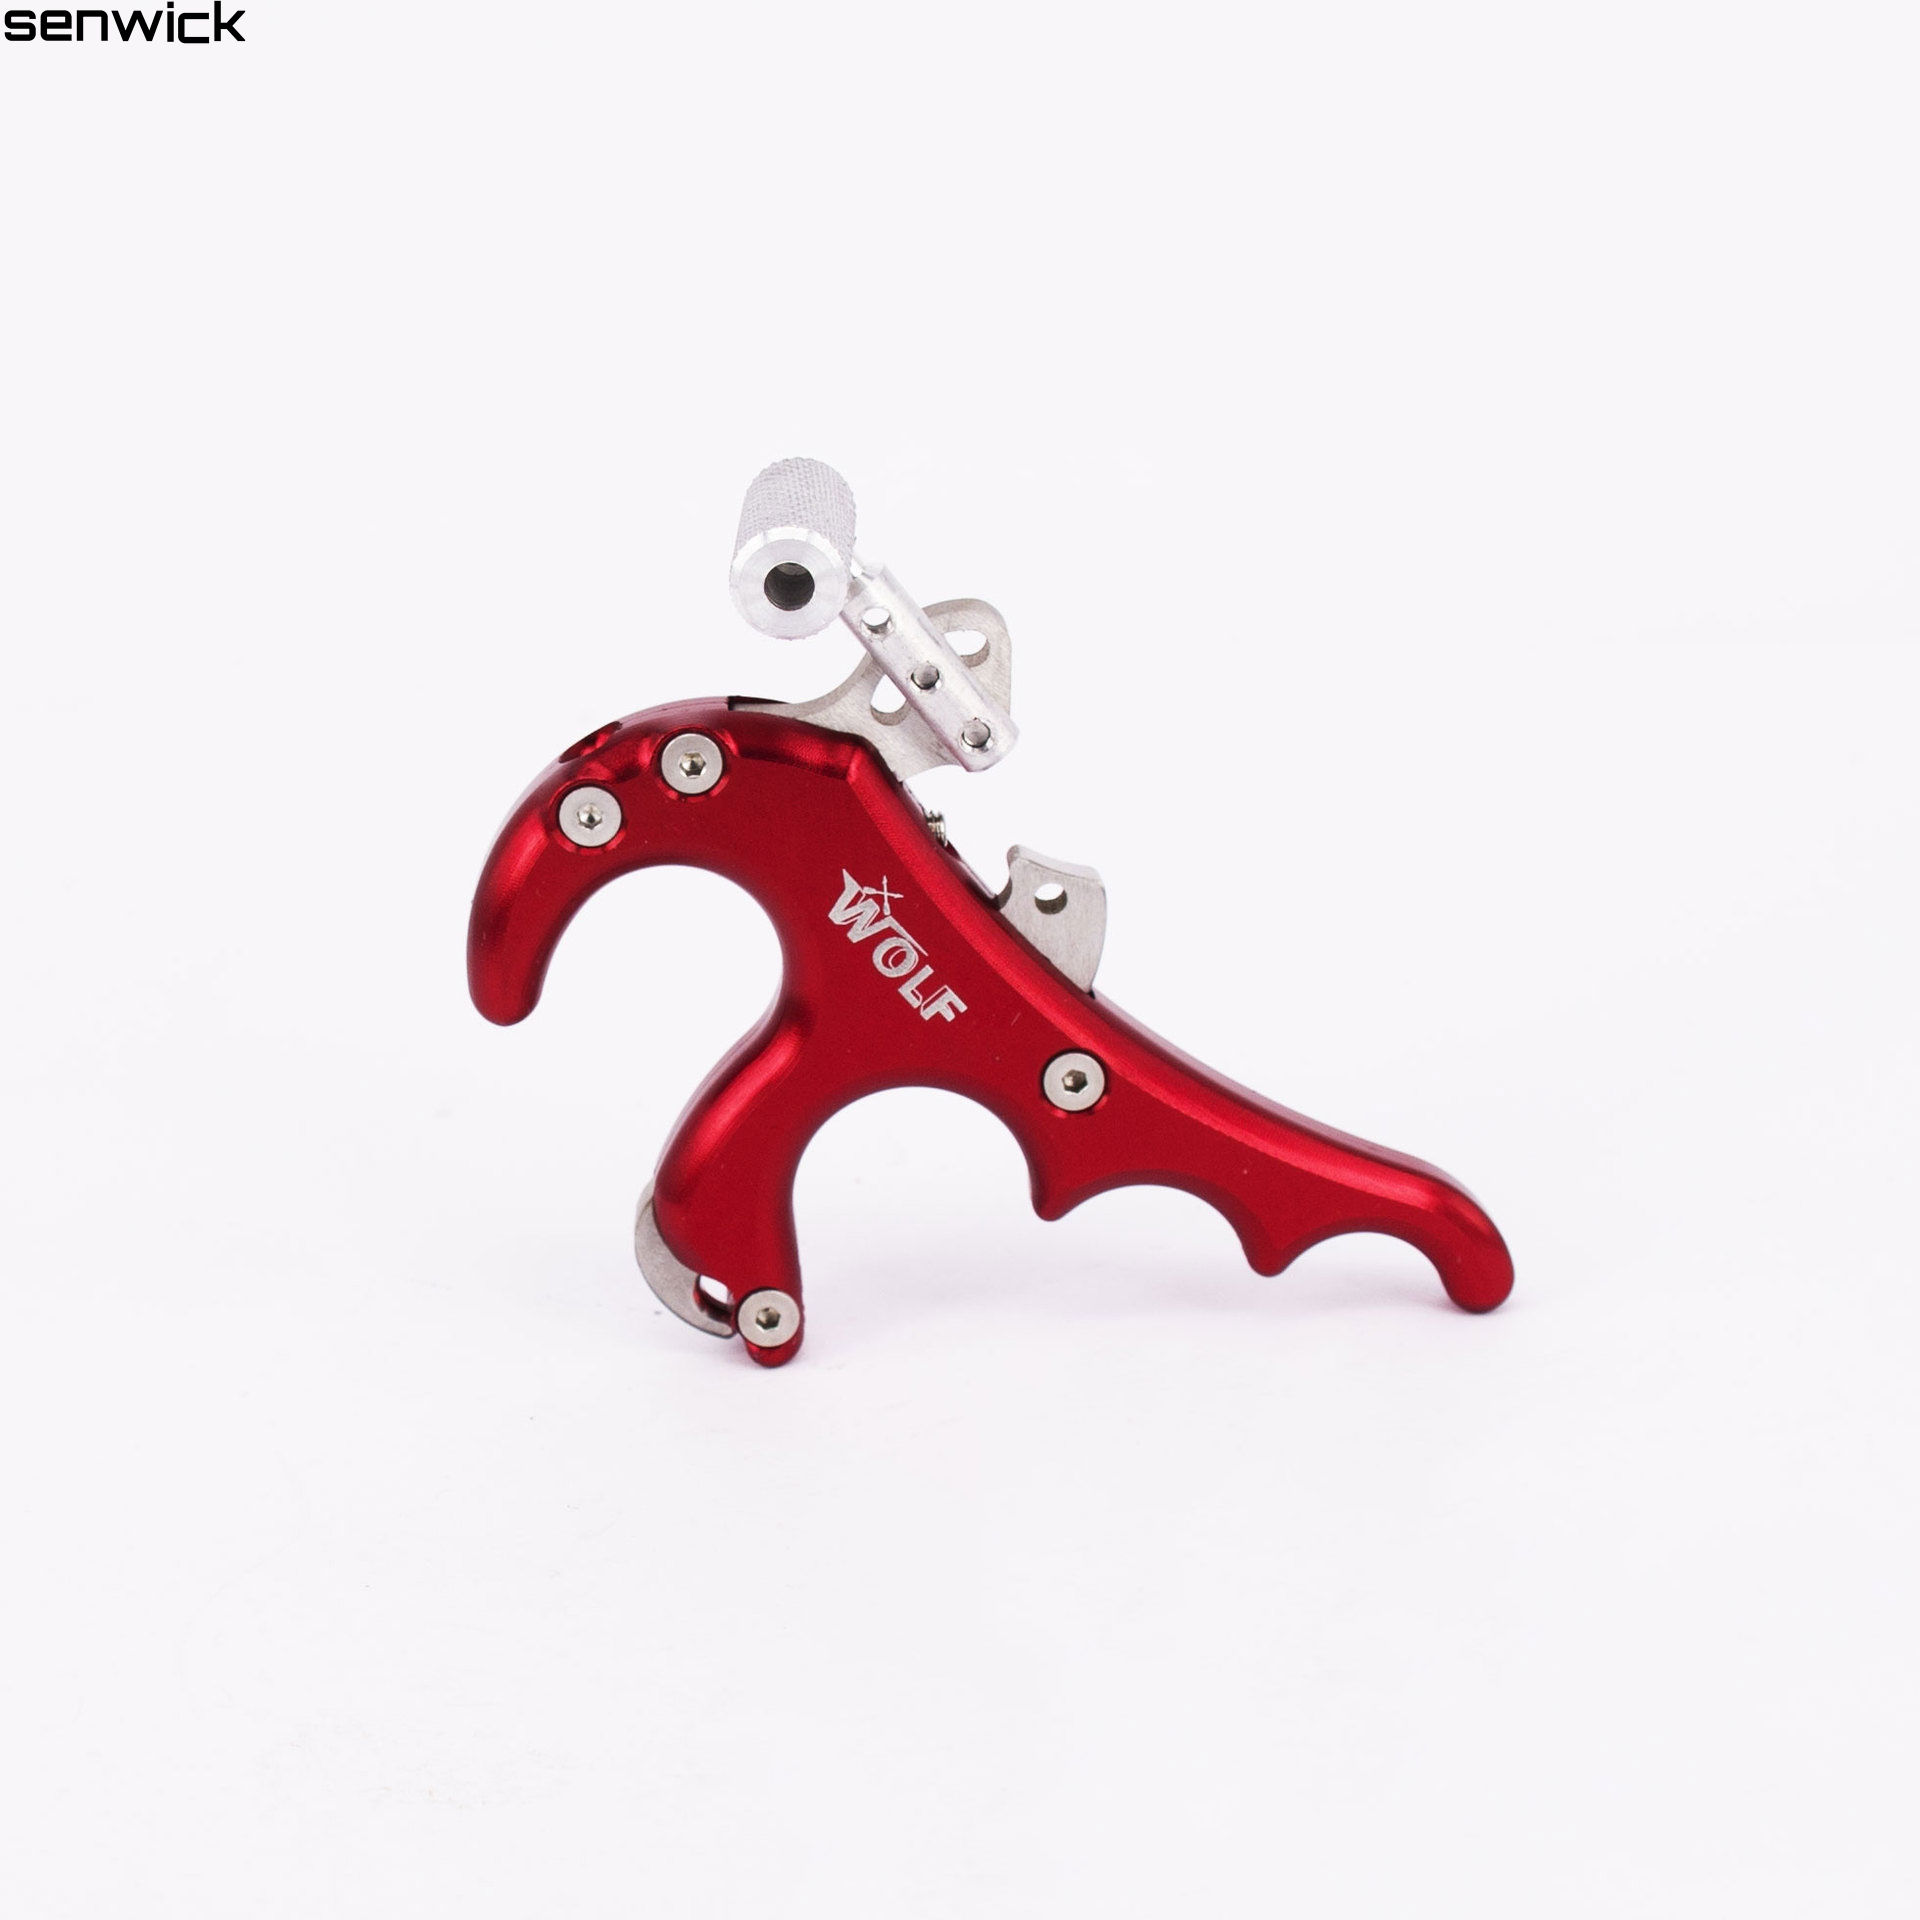 ФОТО New FIVE COLOR WOLF 440C Stainless Steel Release Aid Archery Caliper Release For Compound Bow Archery Arrows And Bow Release